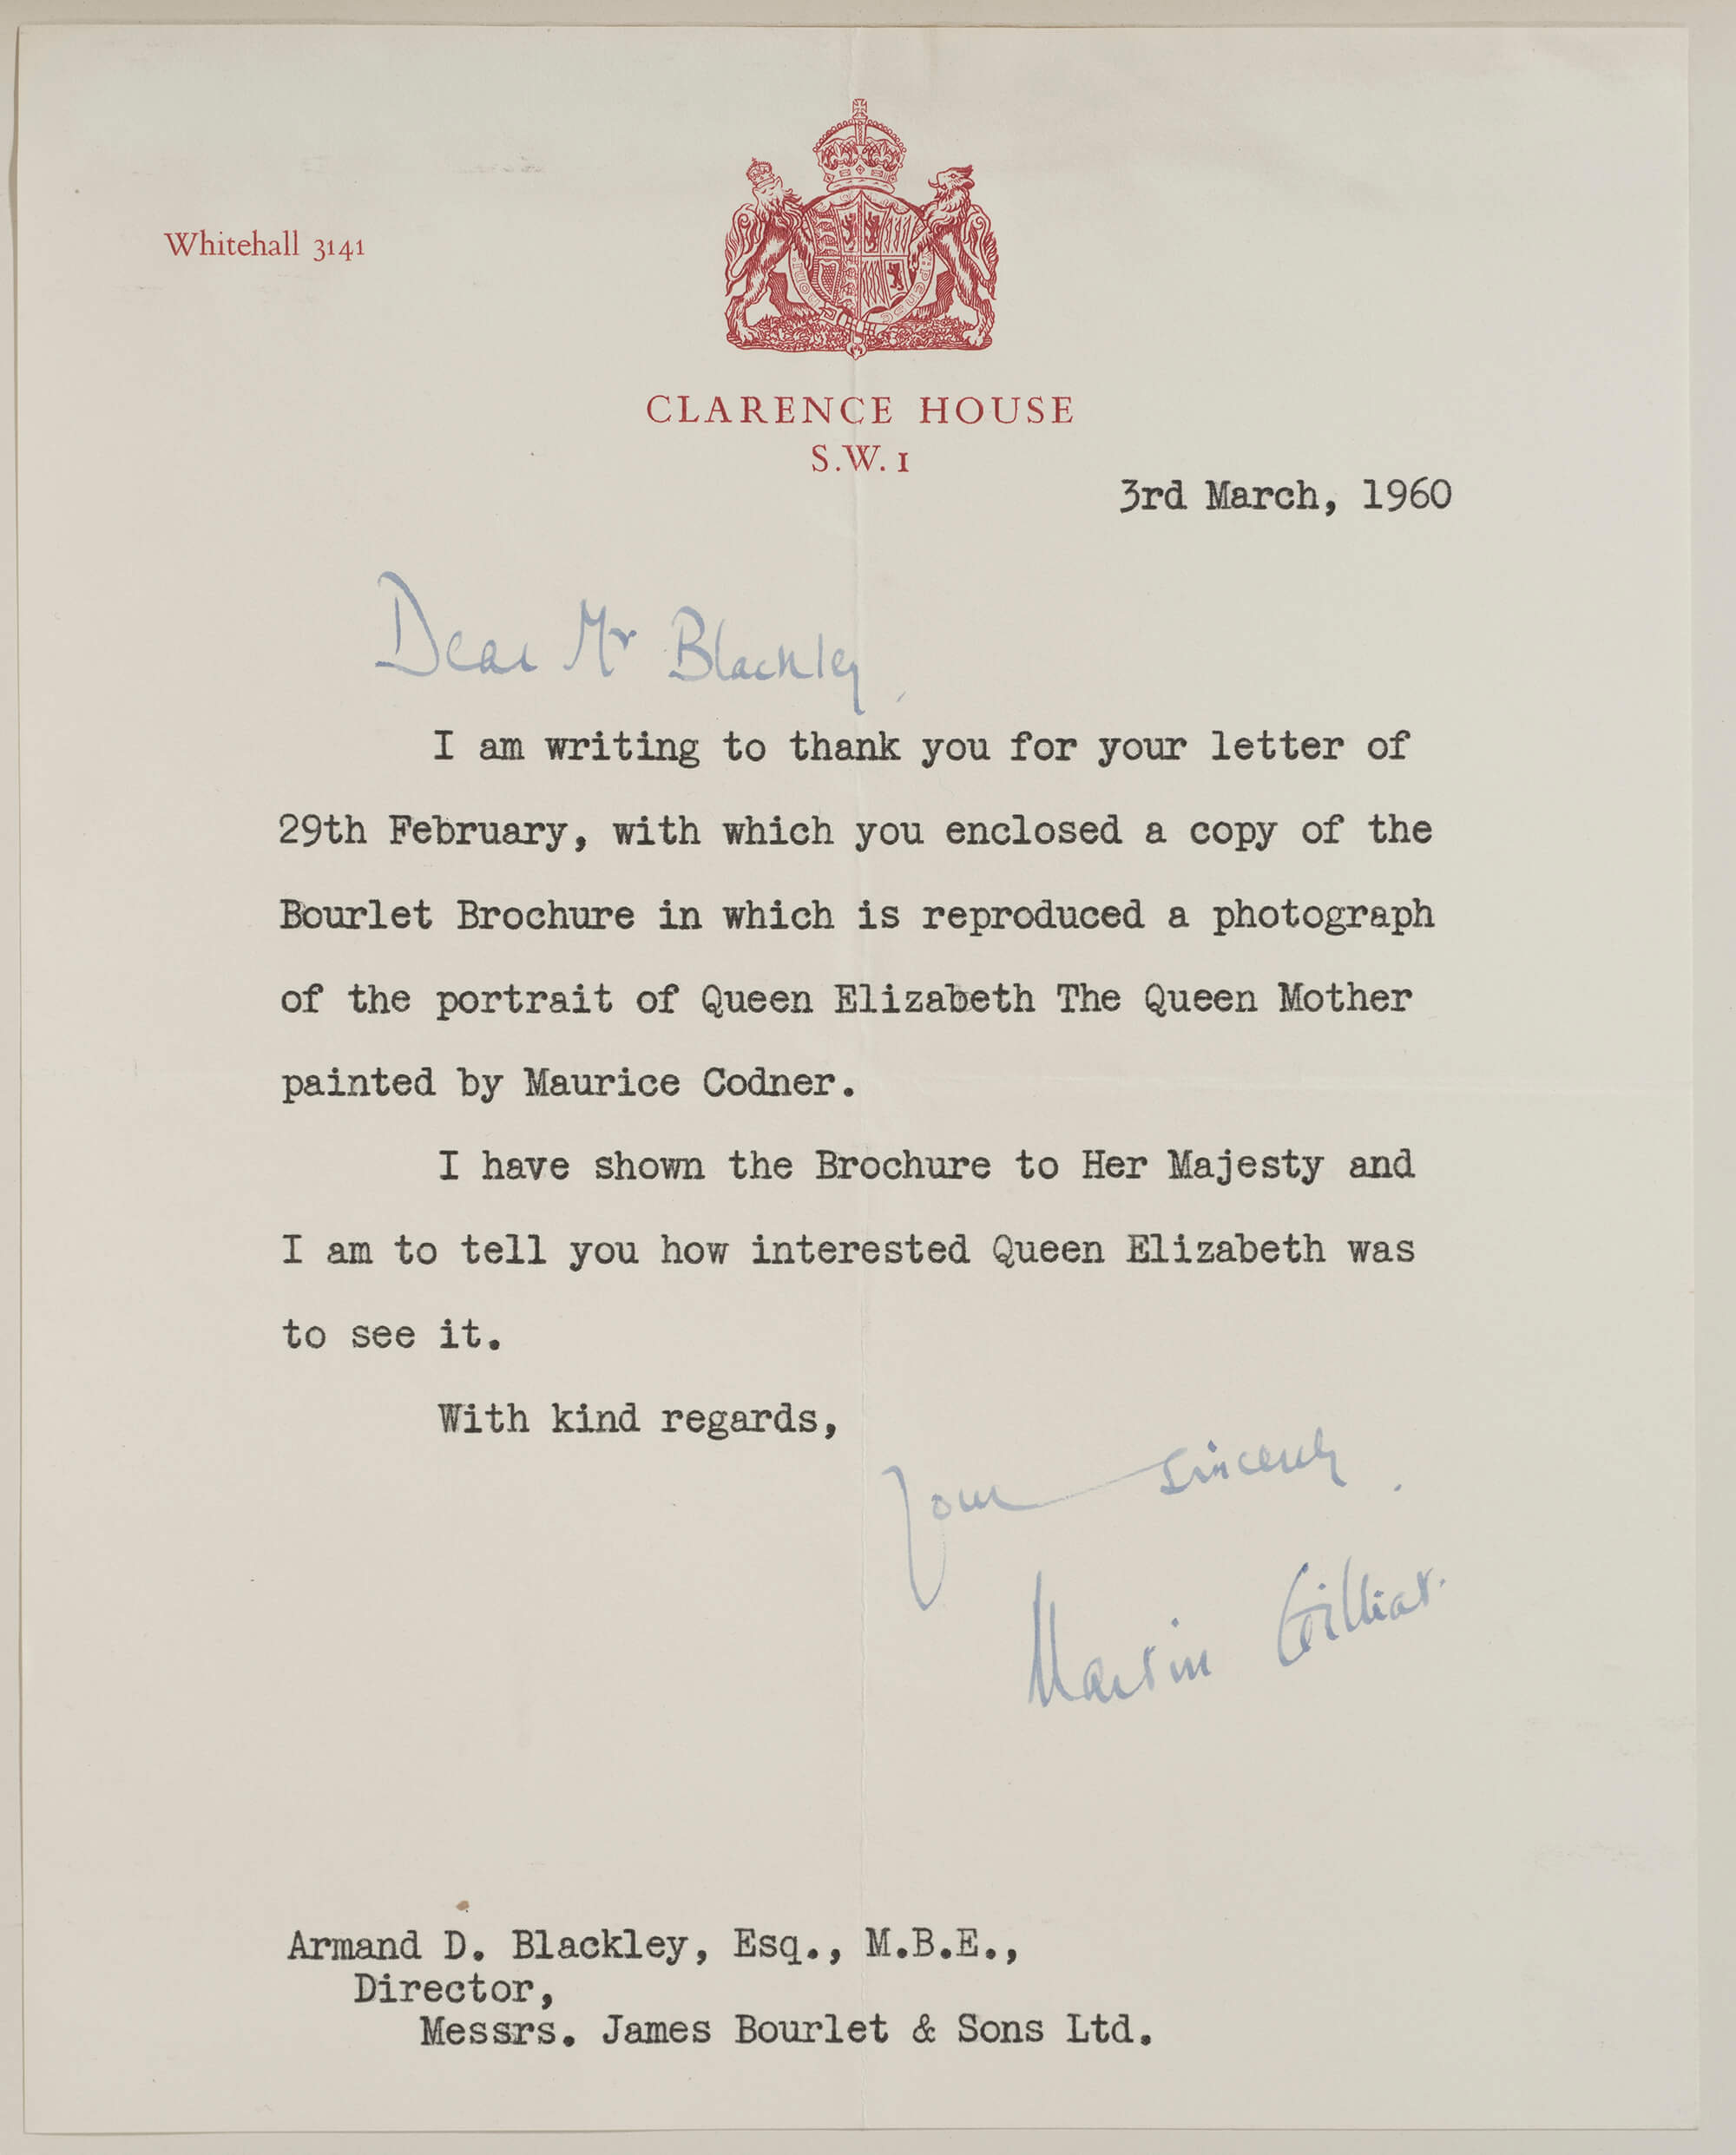 A letter of thanks from Clarence House